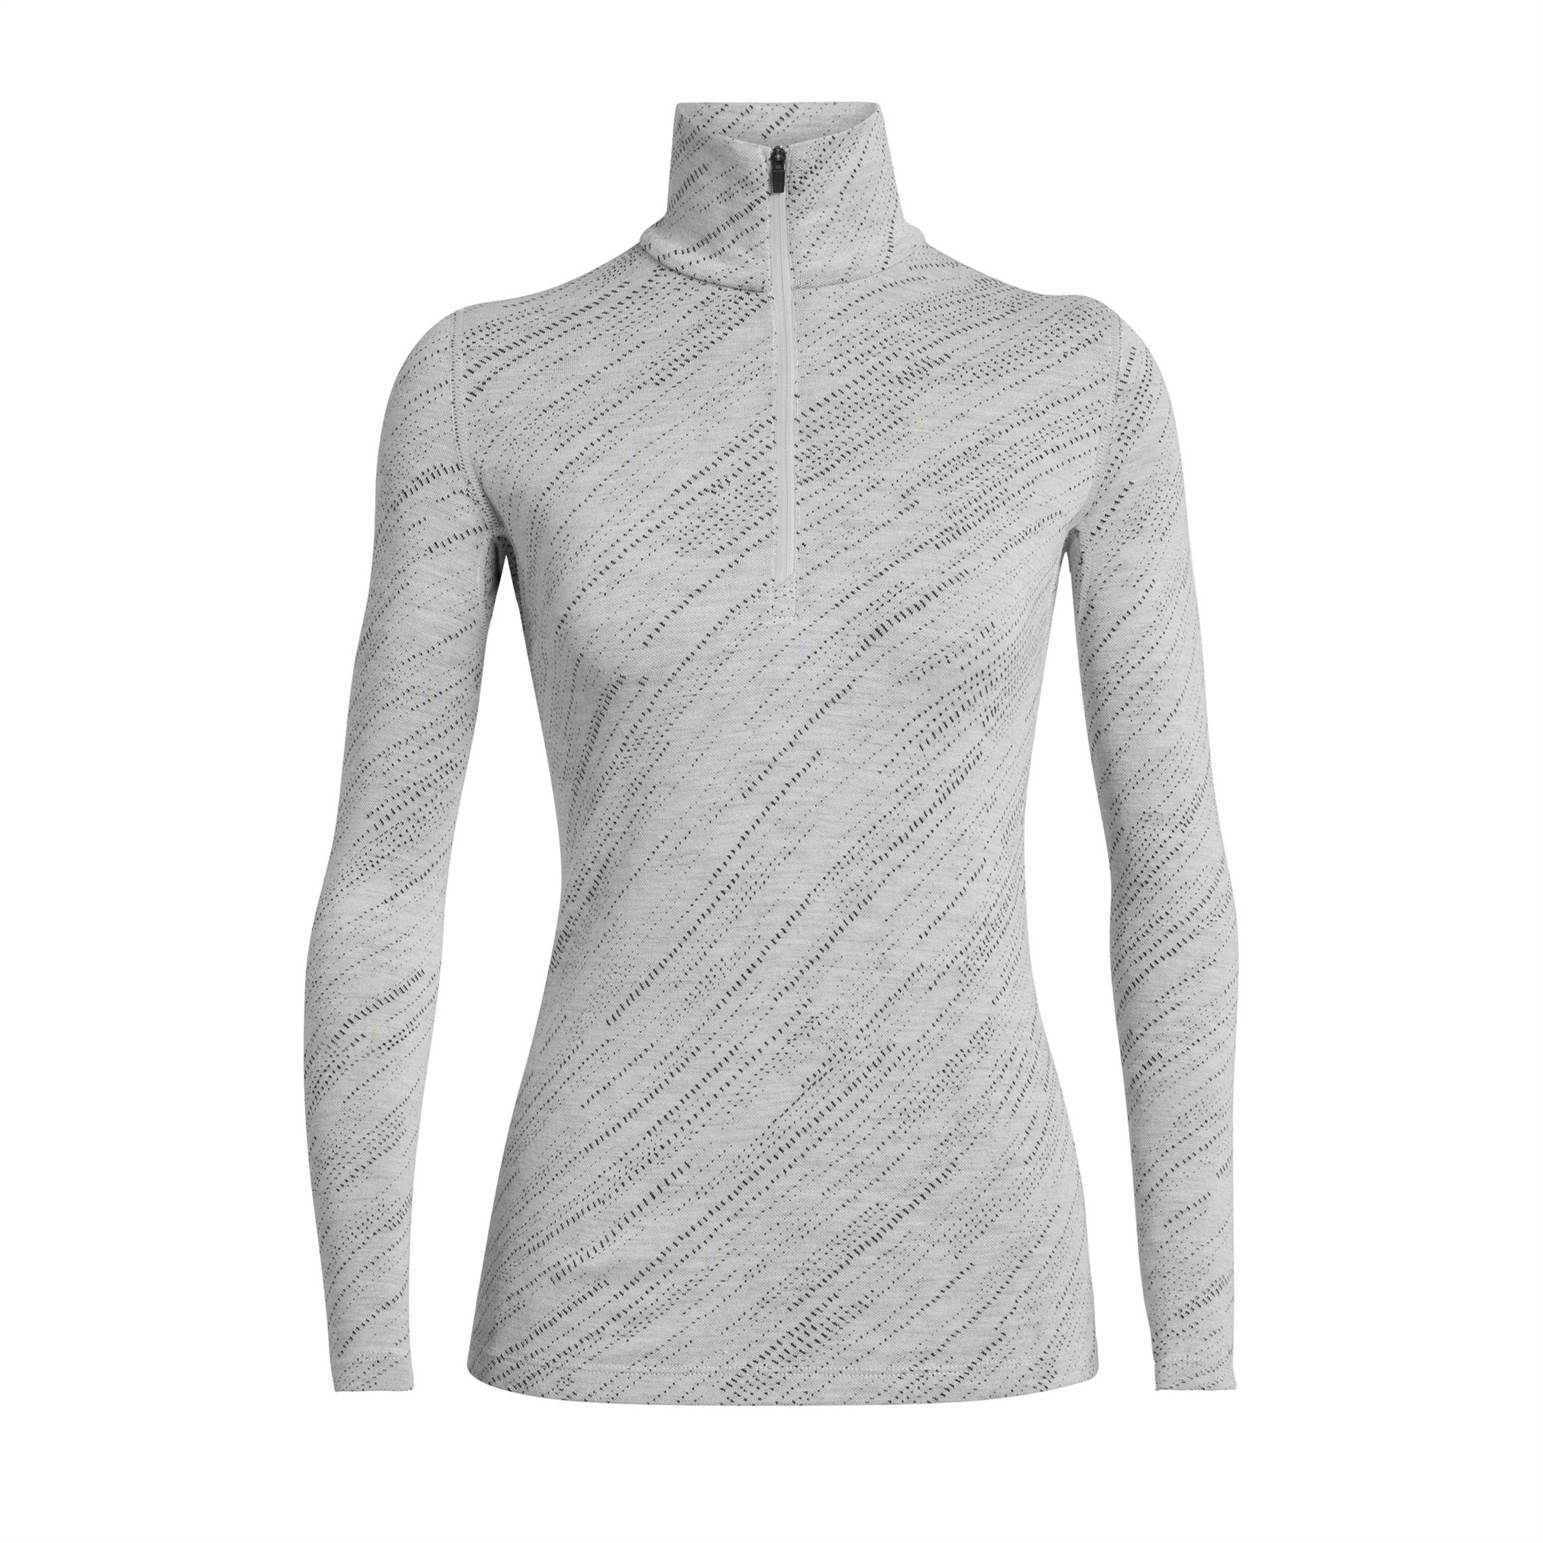 Snow Storm 250 Vertex Half Zip - Women's